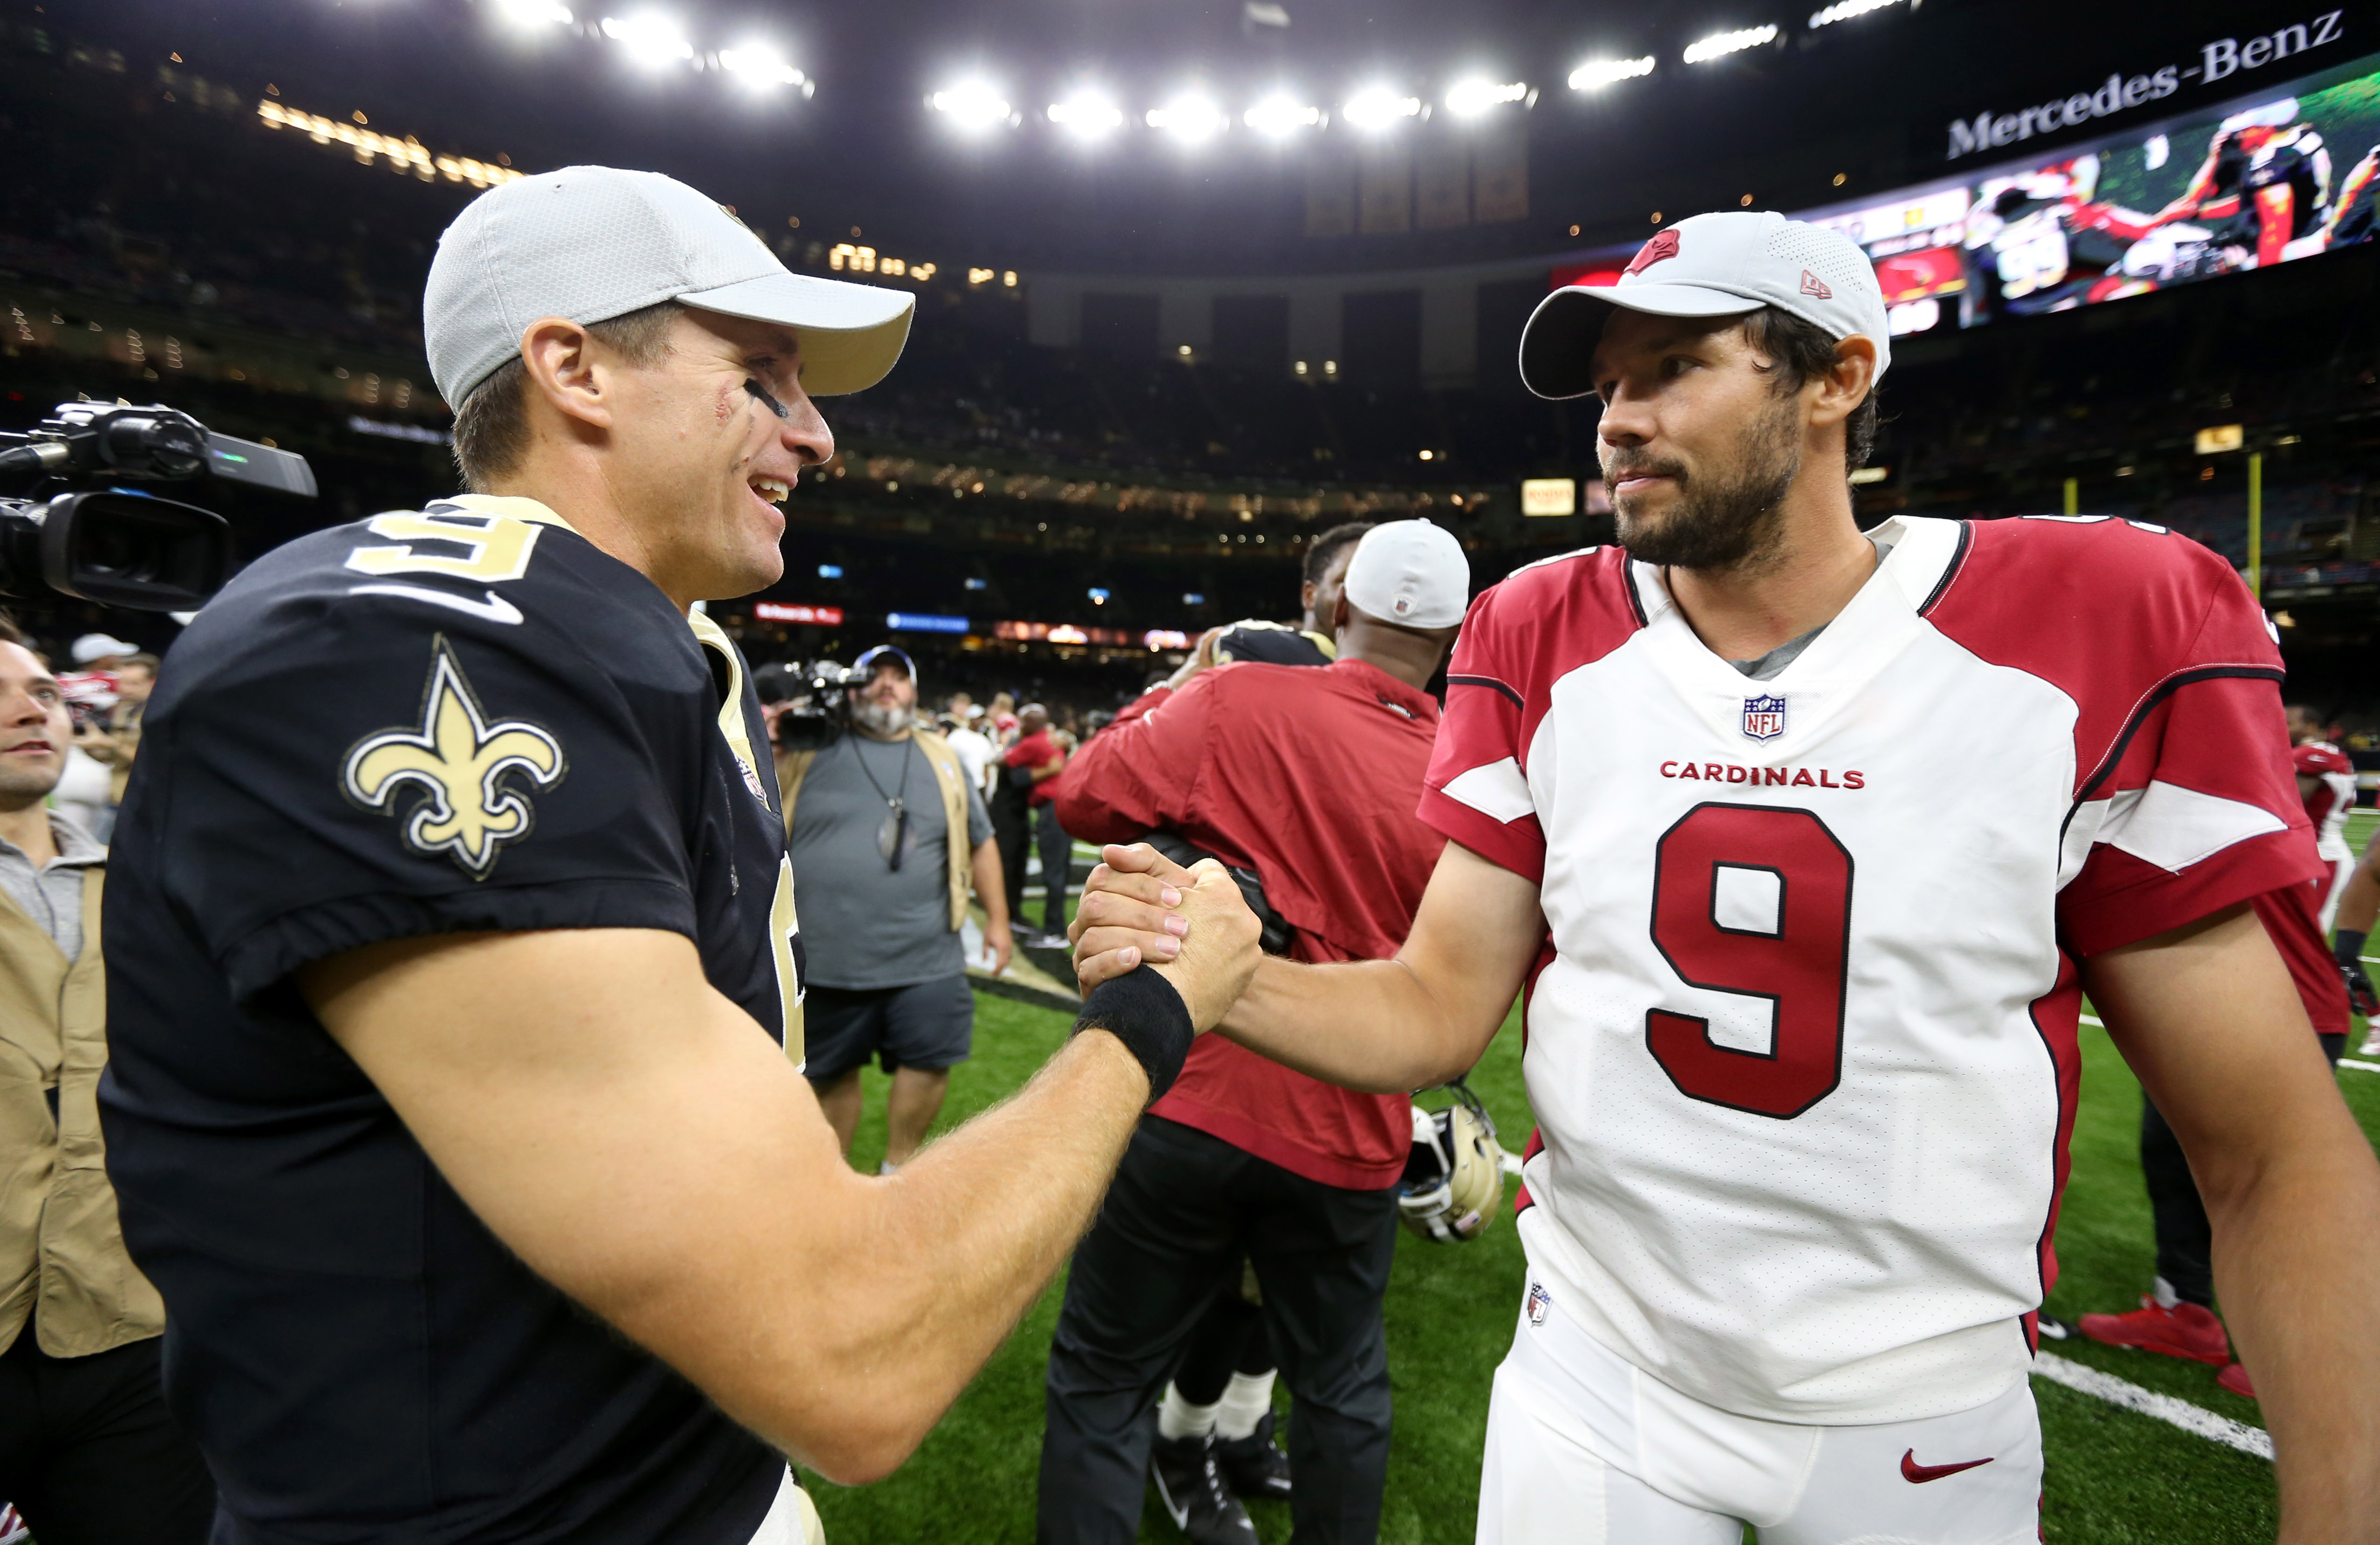 Aug 17, 2018; New Orleans, LA, USA; New Orleans Saints quarterback Drew Brees (9) and Arizona Cardinals quarterback Sam Bradford (9) talk after their game at the Mercedes-Benz Superdome. Mandatory Credit: Chuck Cook-USA TODAY Sports